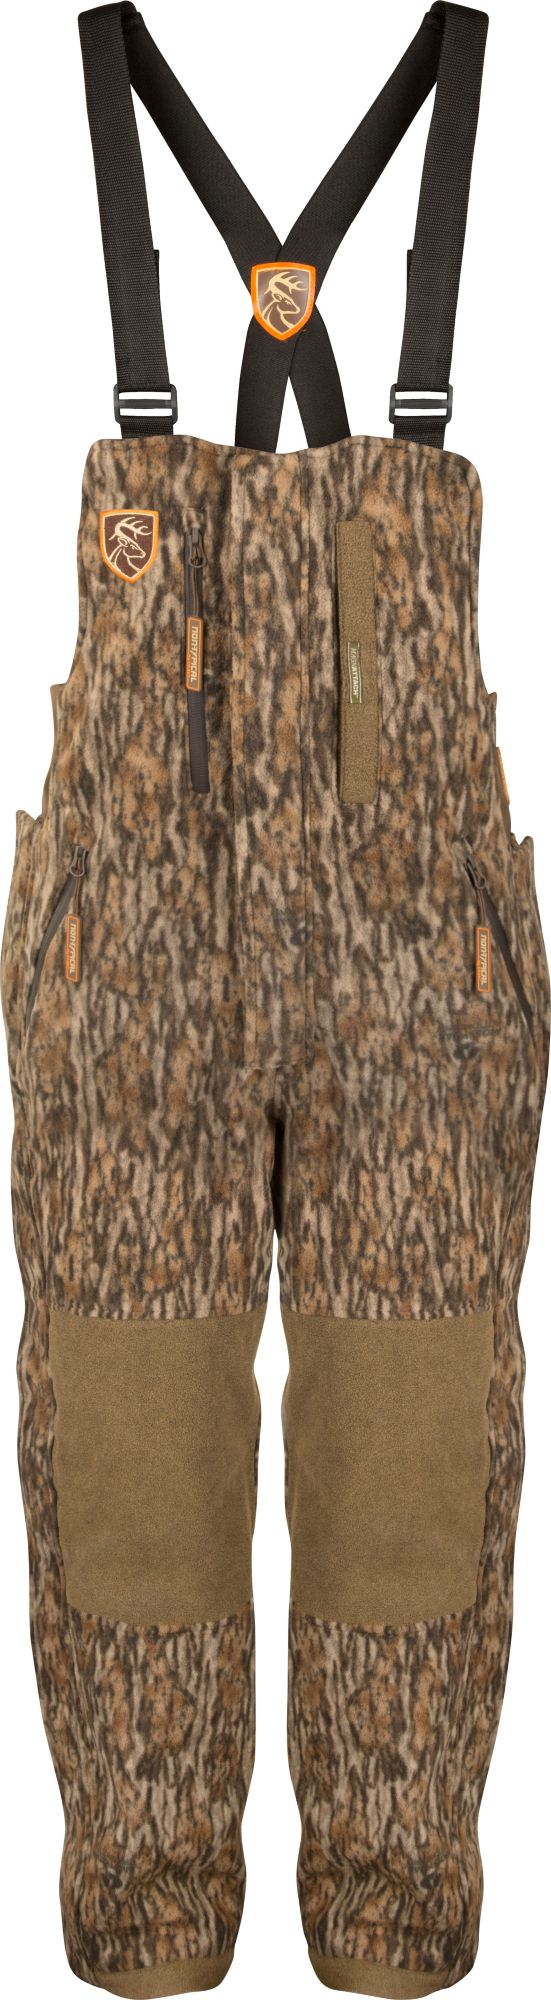 Drake Waterfowl Men's Non-Typical HydroHush Midweight Hunting Bibs with Agion Active, Size: Small, Real Tree Edge thumbnail